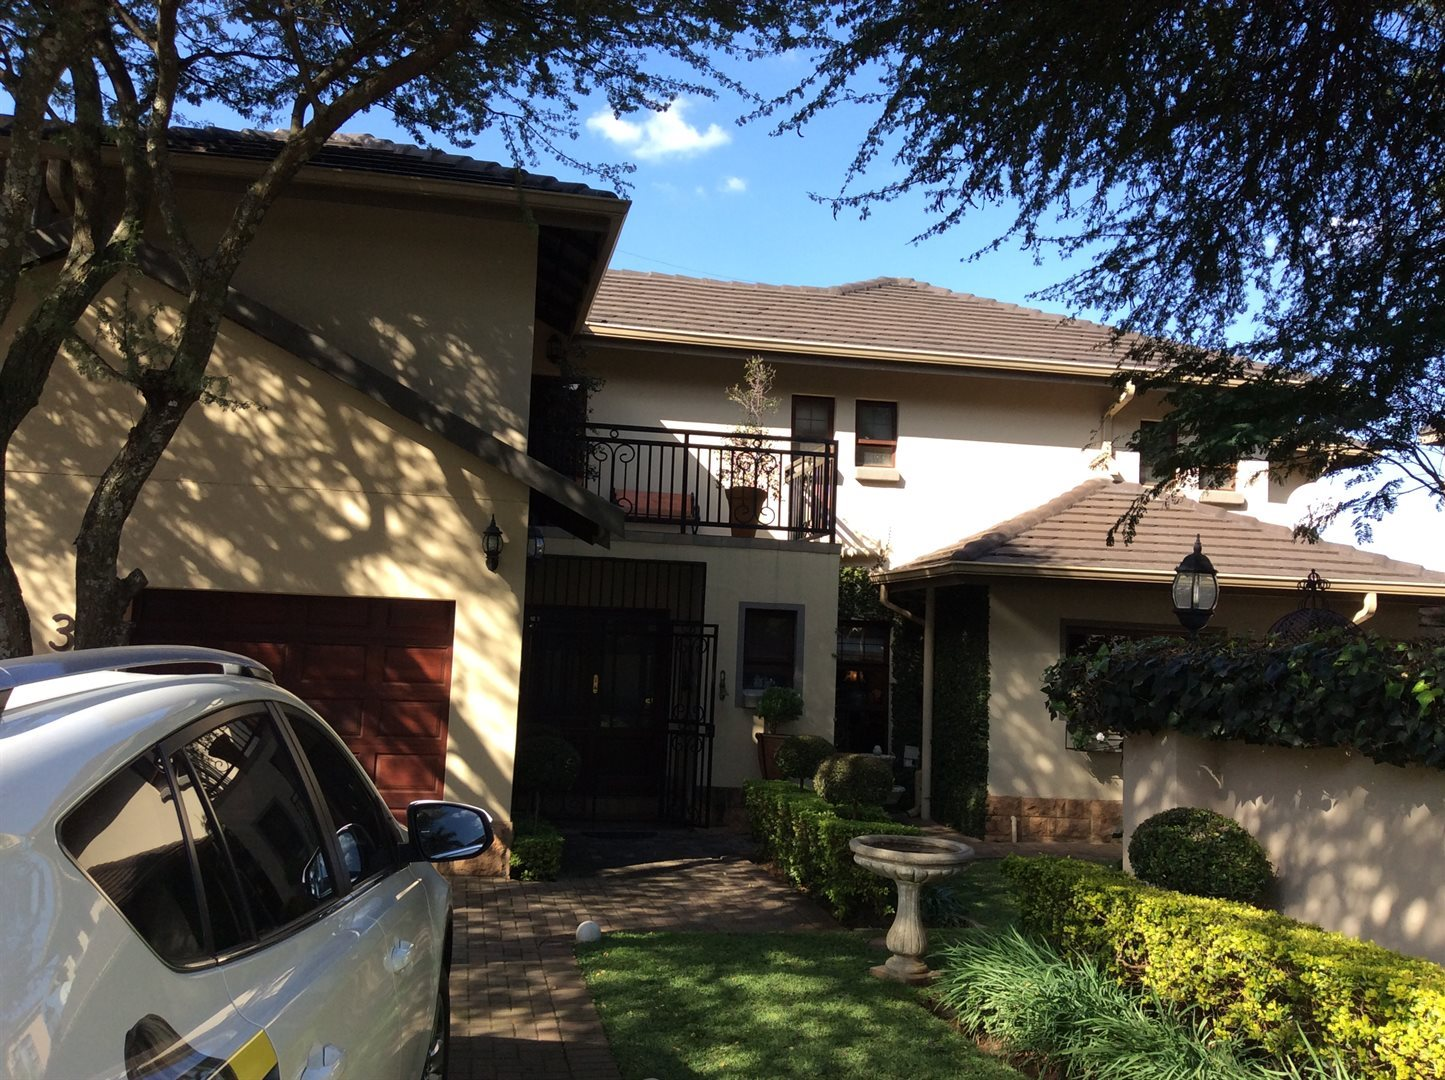 3 Bedroom House for sale in Montana Park ENT0074858 : photo#2